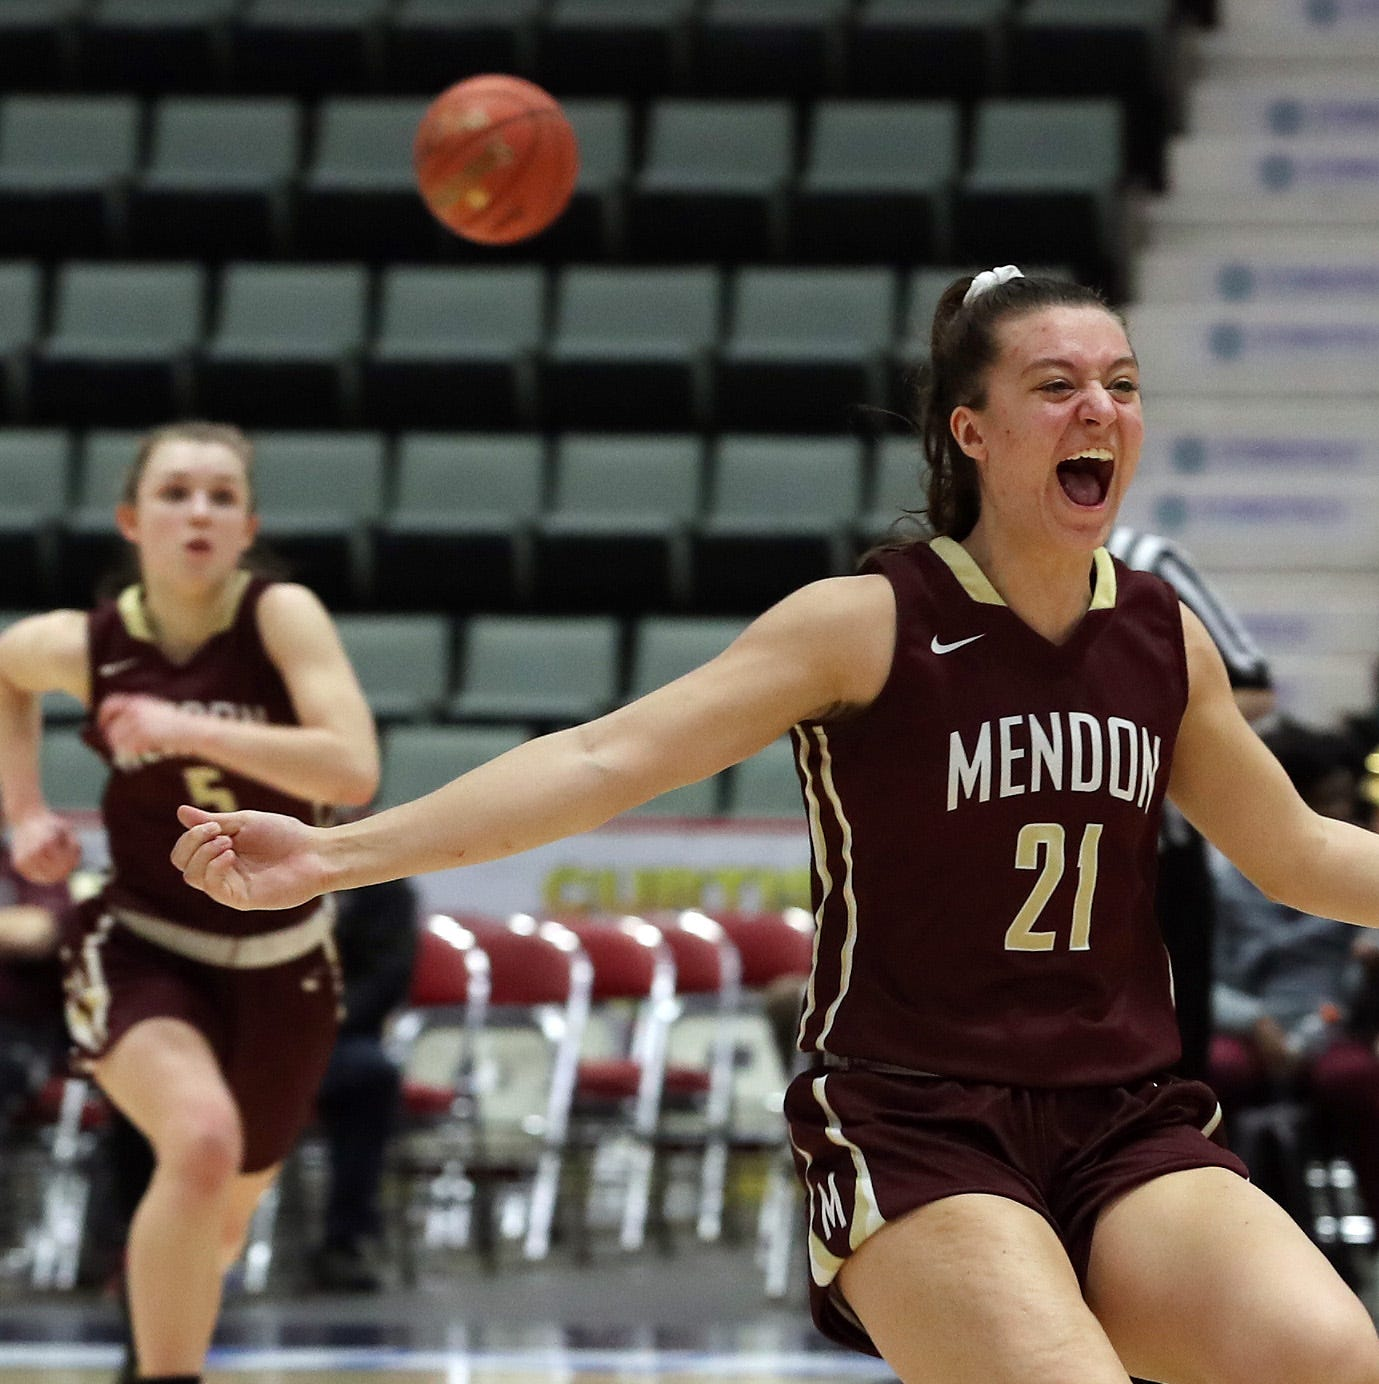 AGR Girls Basketball: Meet the standouts who excelled in Section V